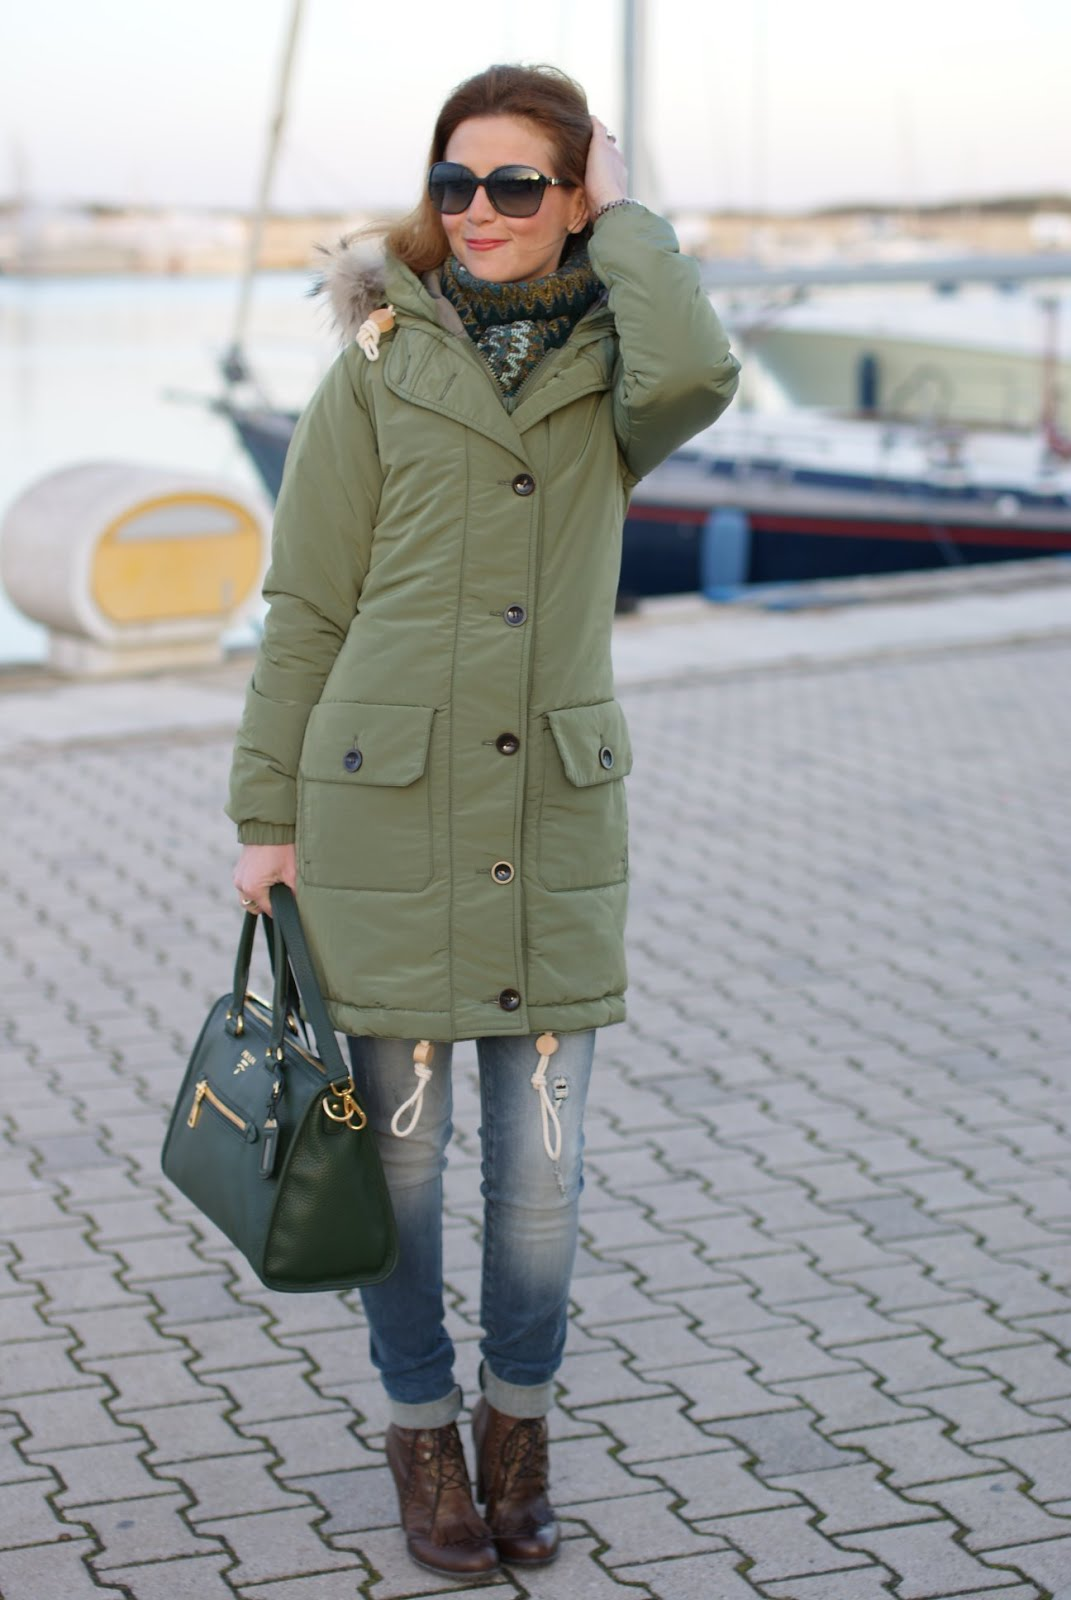 Trendy and warm: my Parka jacket ! | Fashion and Cookies - fashion ...